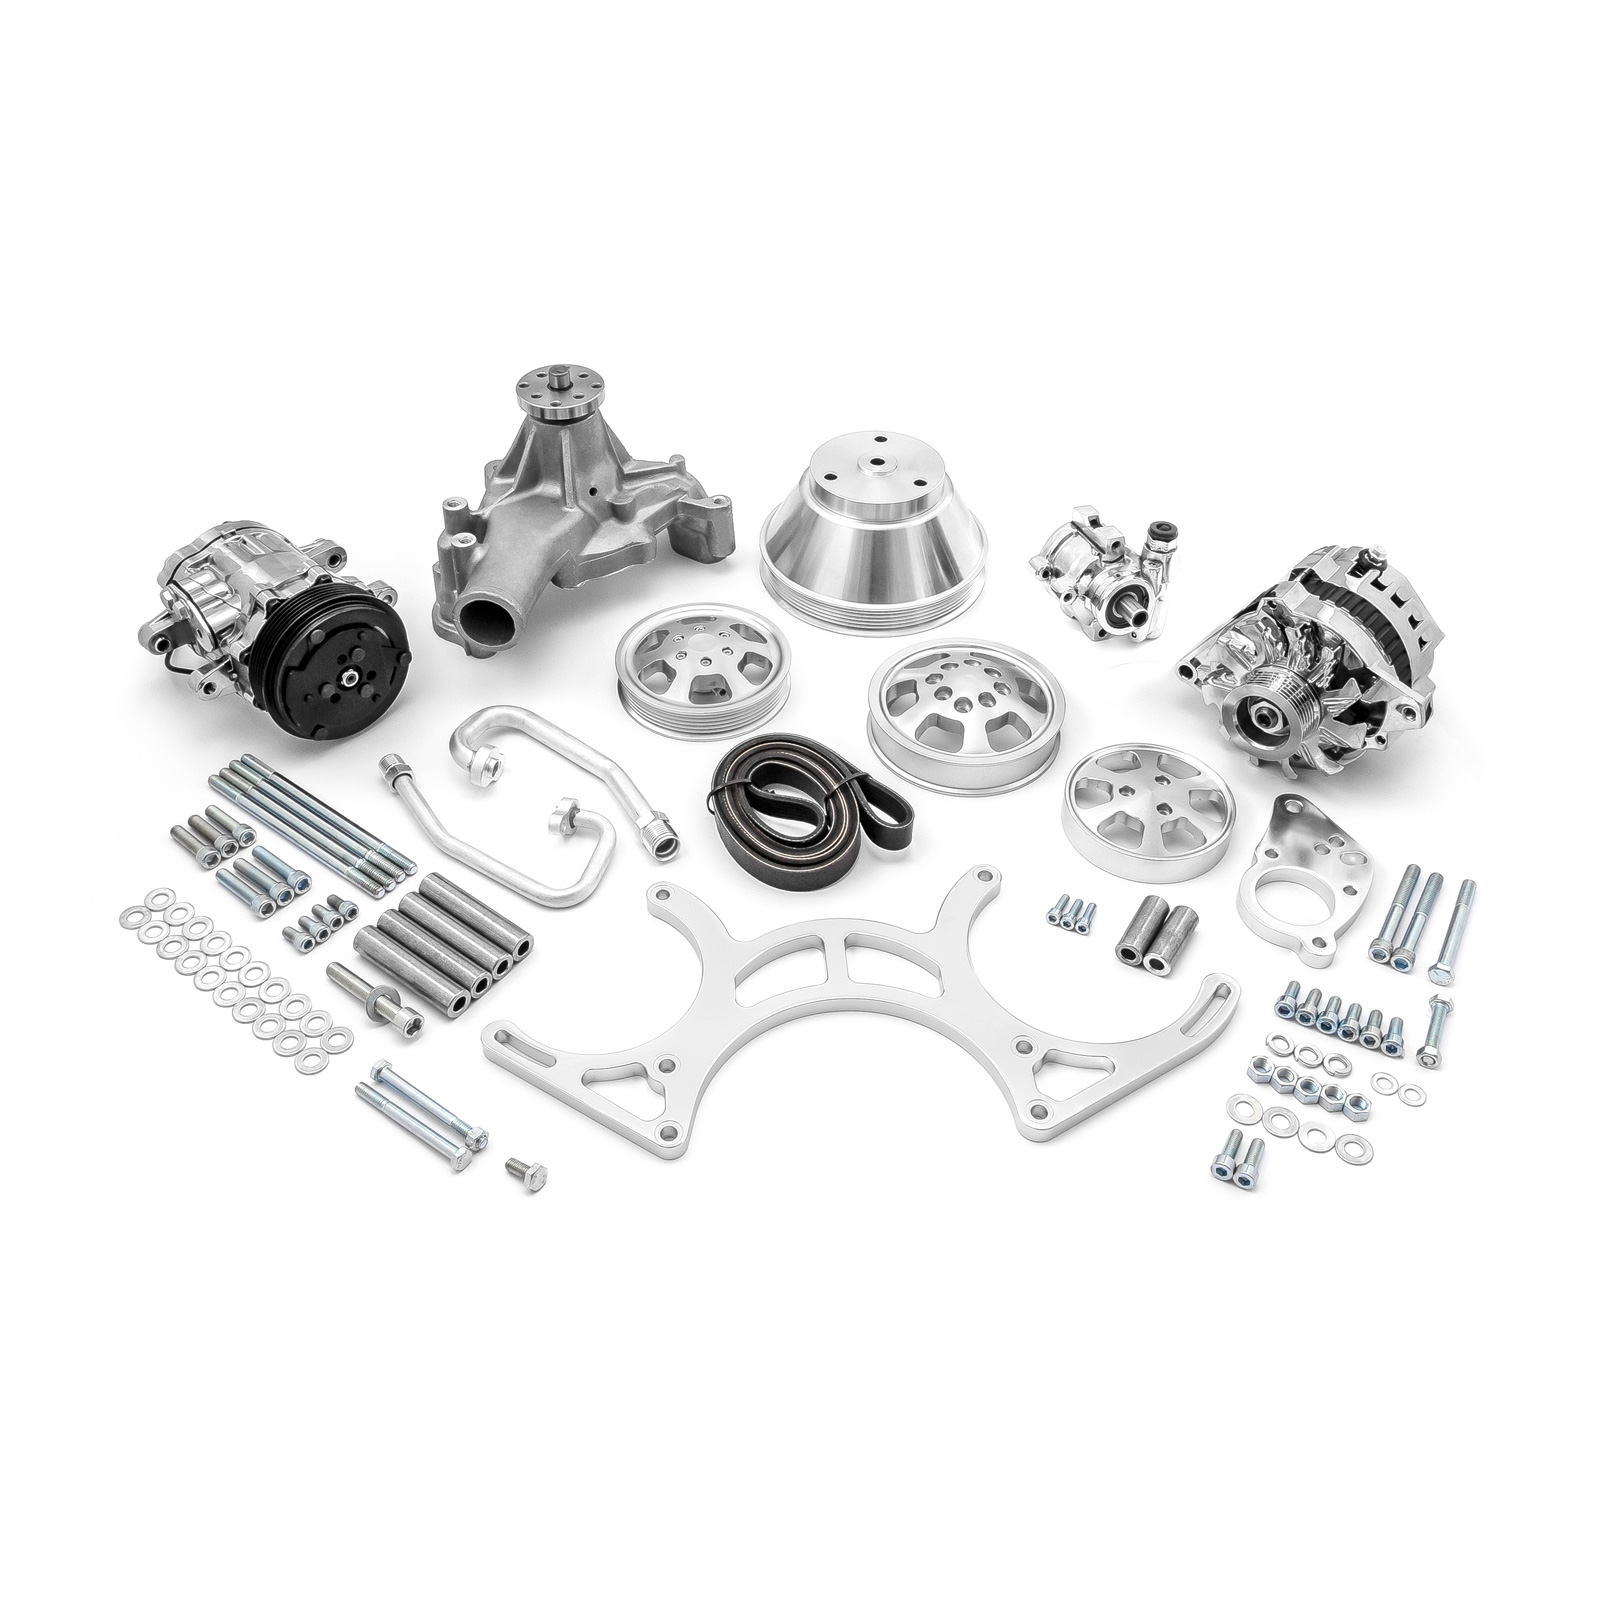 PCE® PCE415.1028 Chevy SBC 350 Aluminum Serpentine Complete Engine Pulley & Components Kit